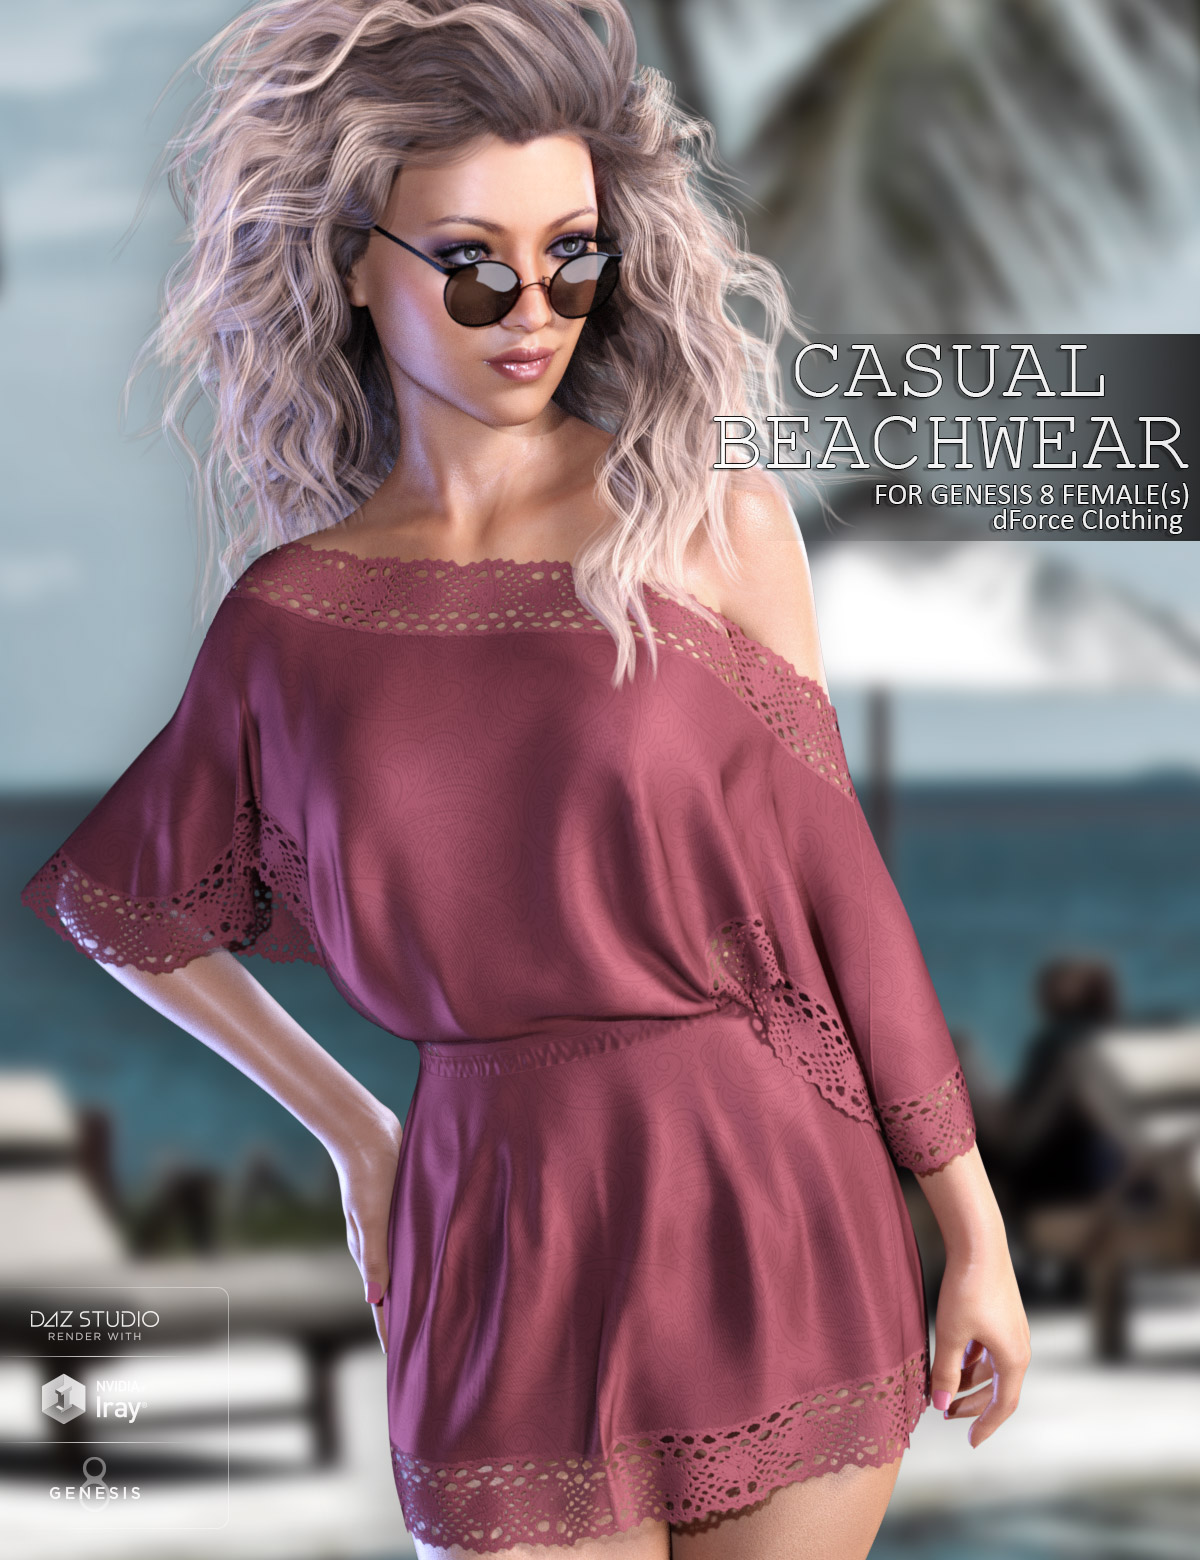 dForce Casual Beachwear for Genesis 8 Females